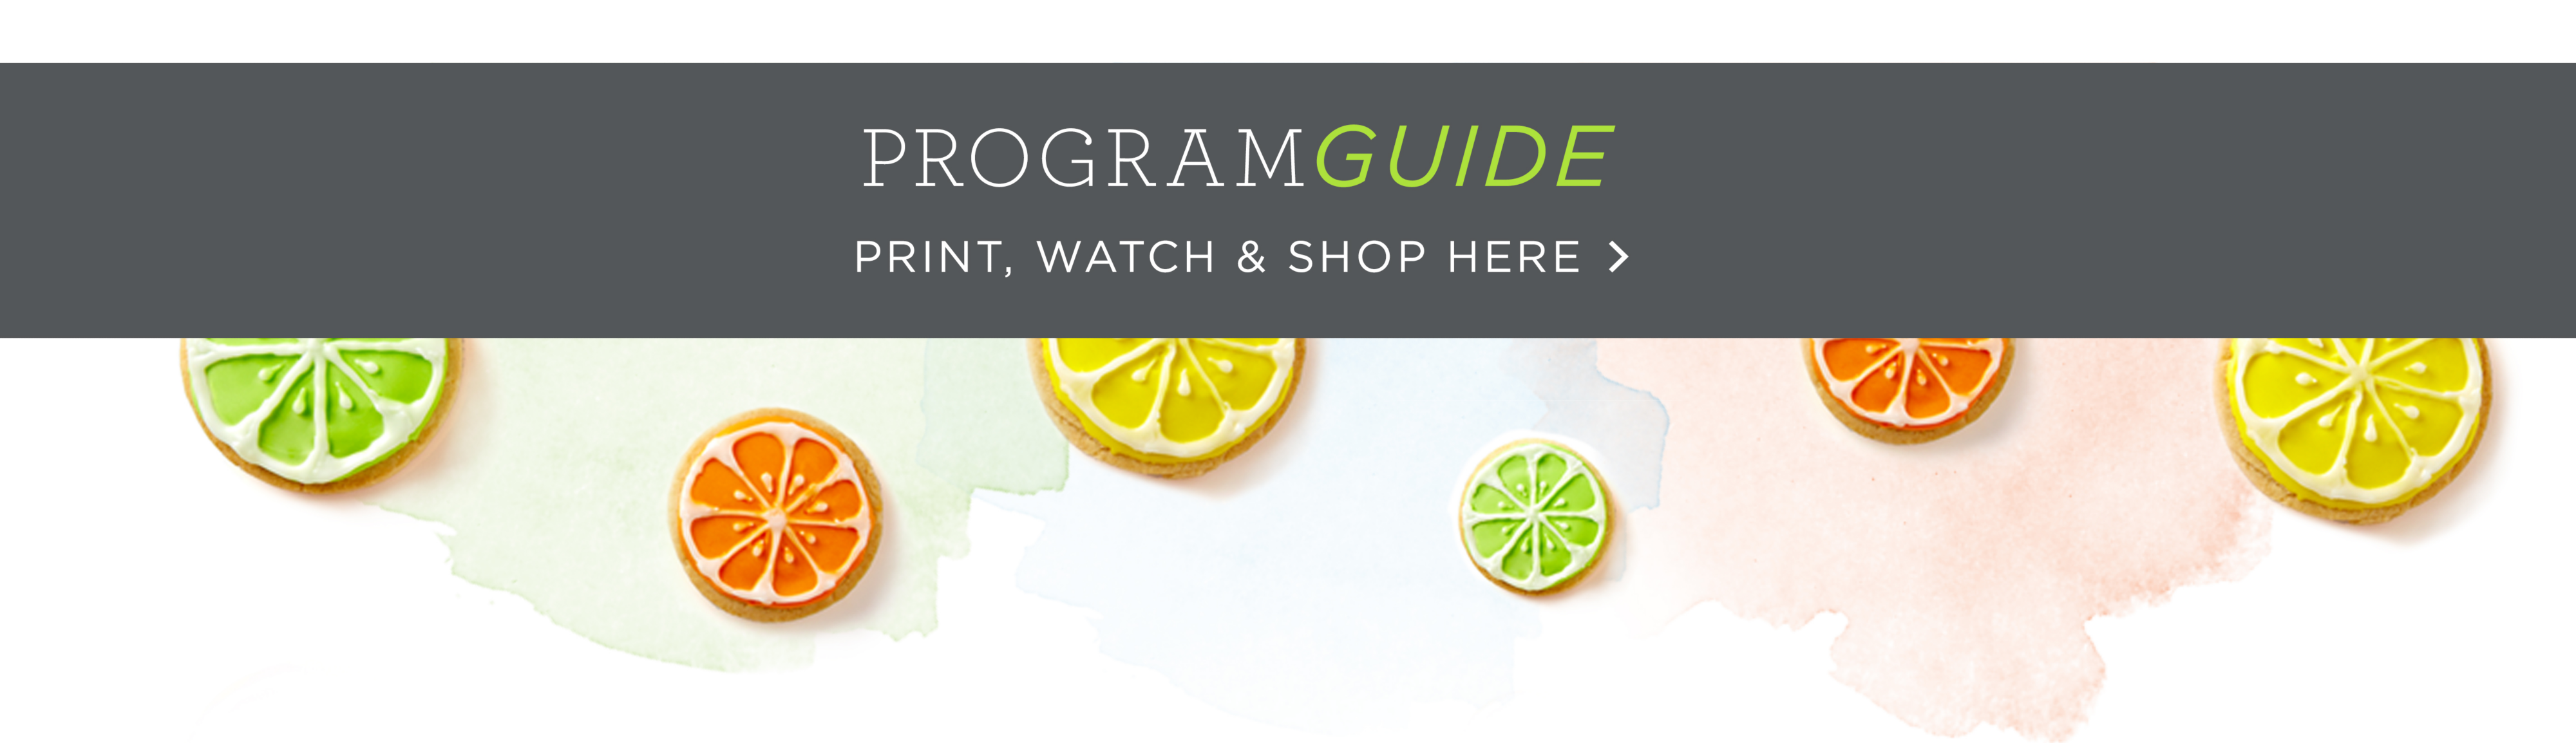 Program Guide. PRINT, WATCH & SHOP HERE